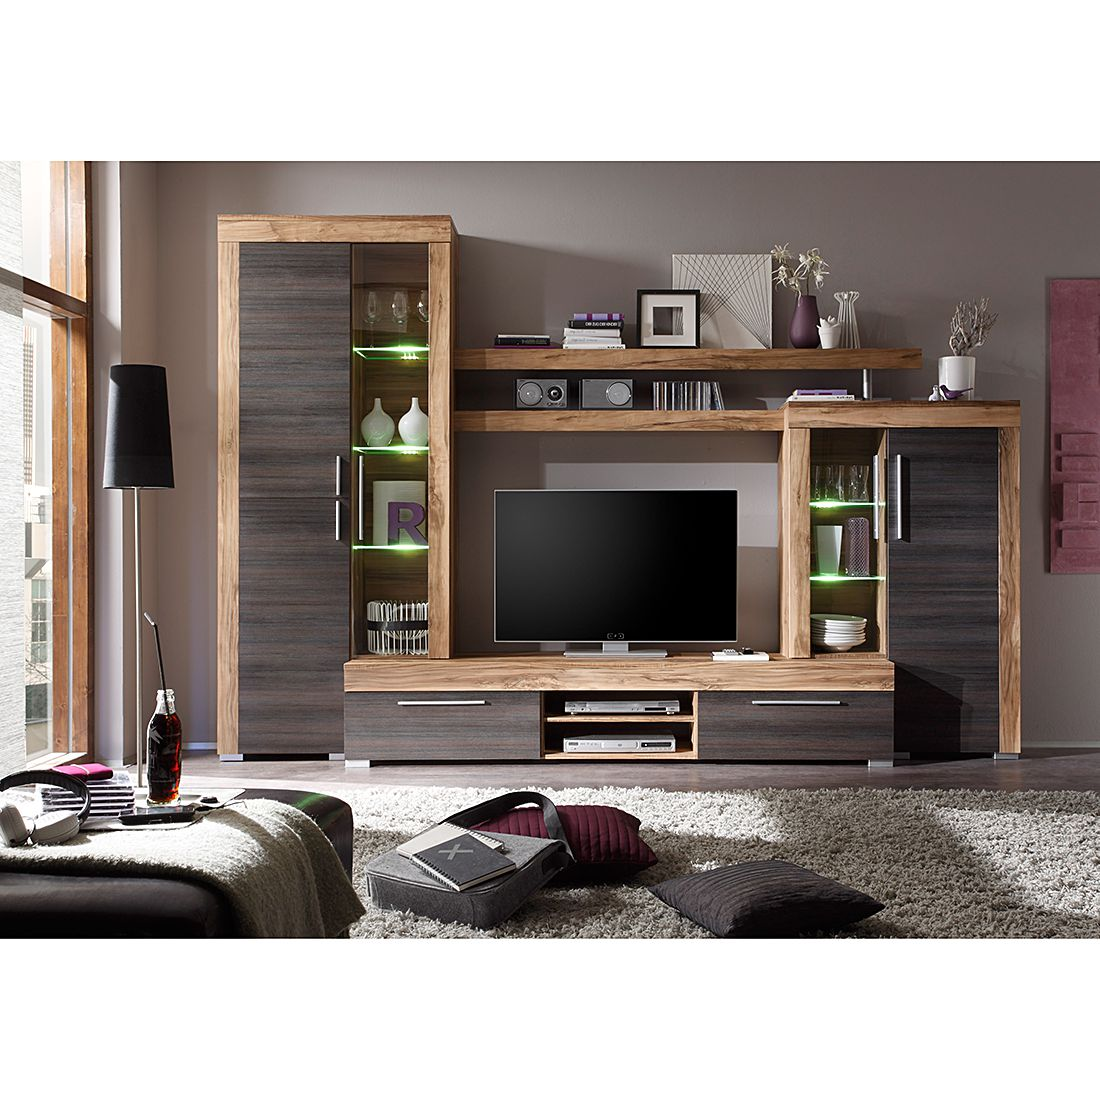 wohnwand bang 4 teilig nussbaum dekor braun ebay. Black Bedroom Furniture Sets. Home Design Ideas